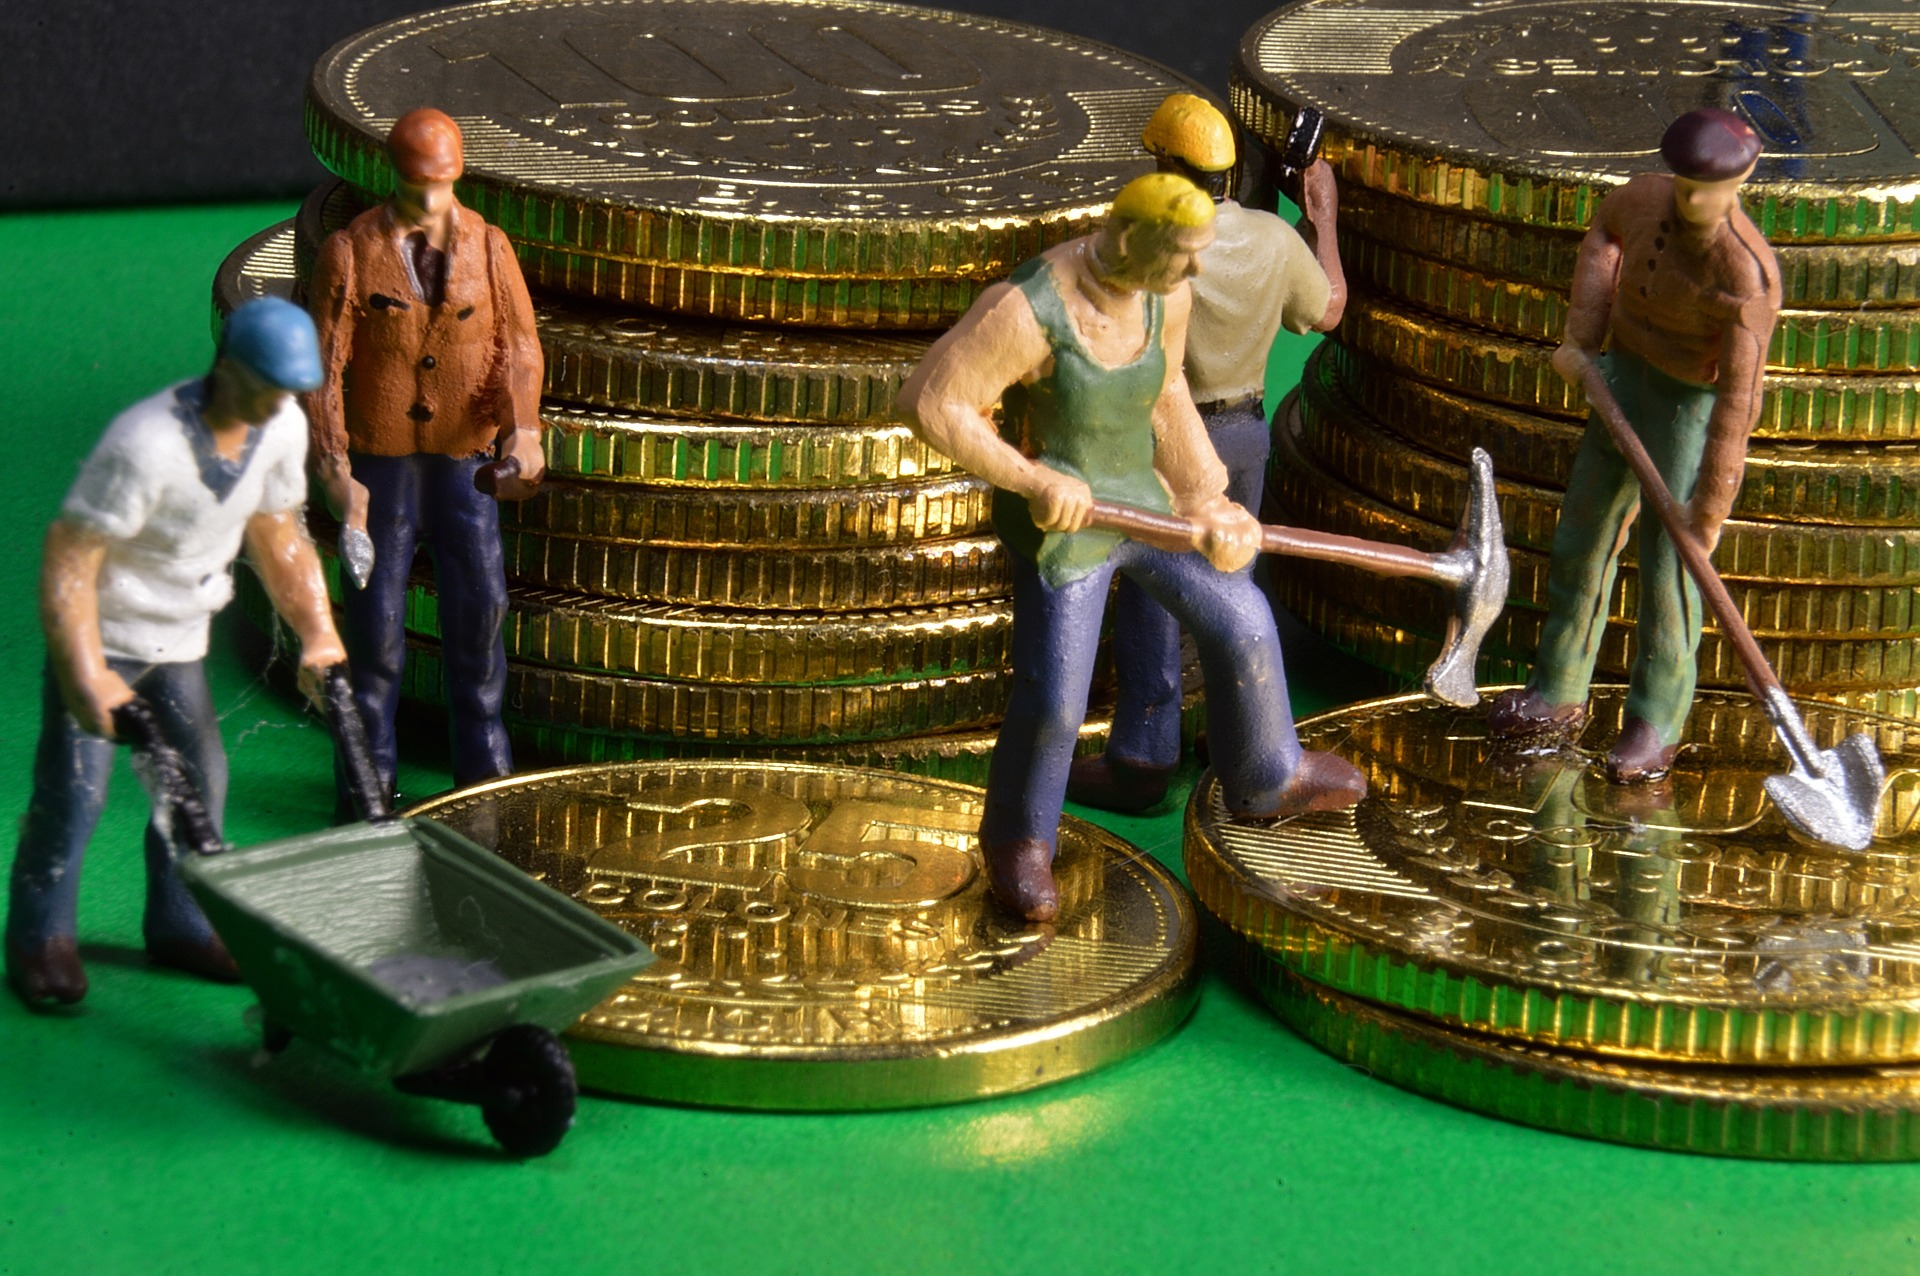 figurines of workers standing on coin pile